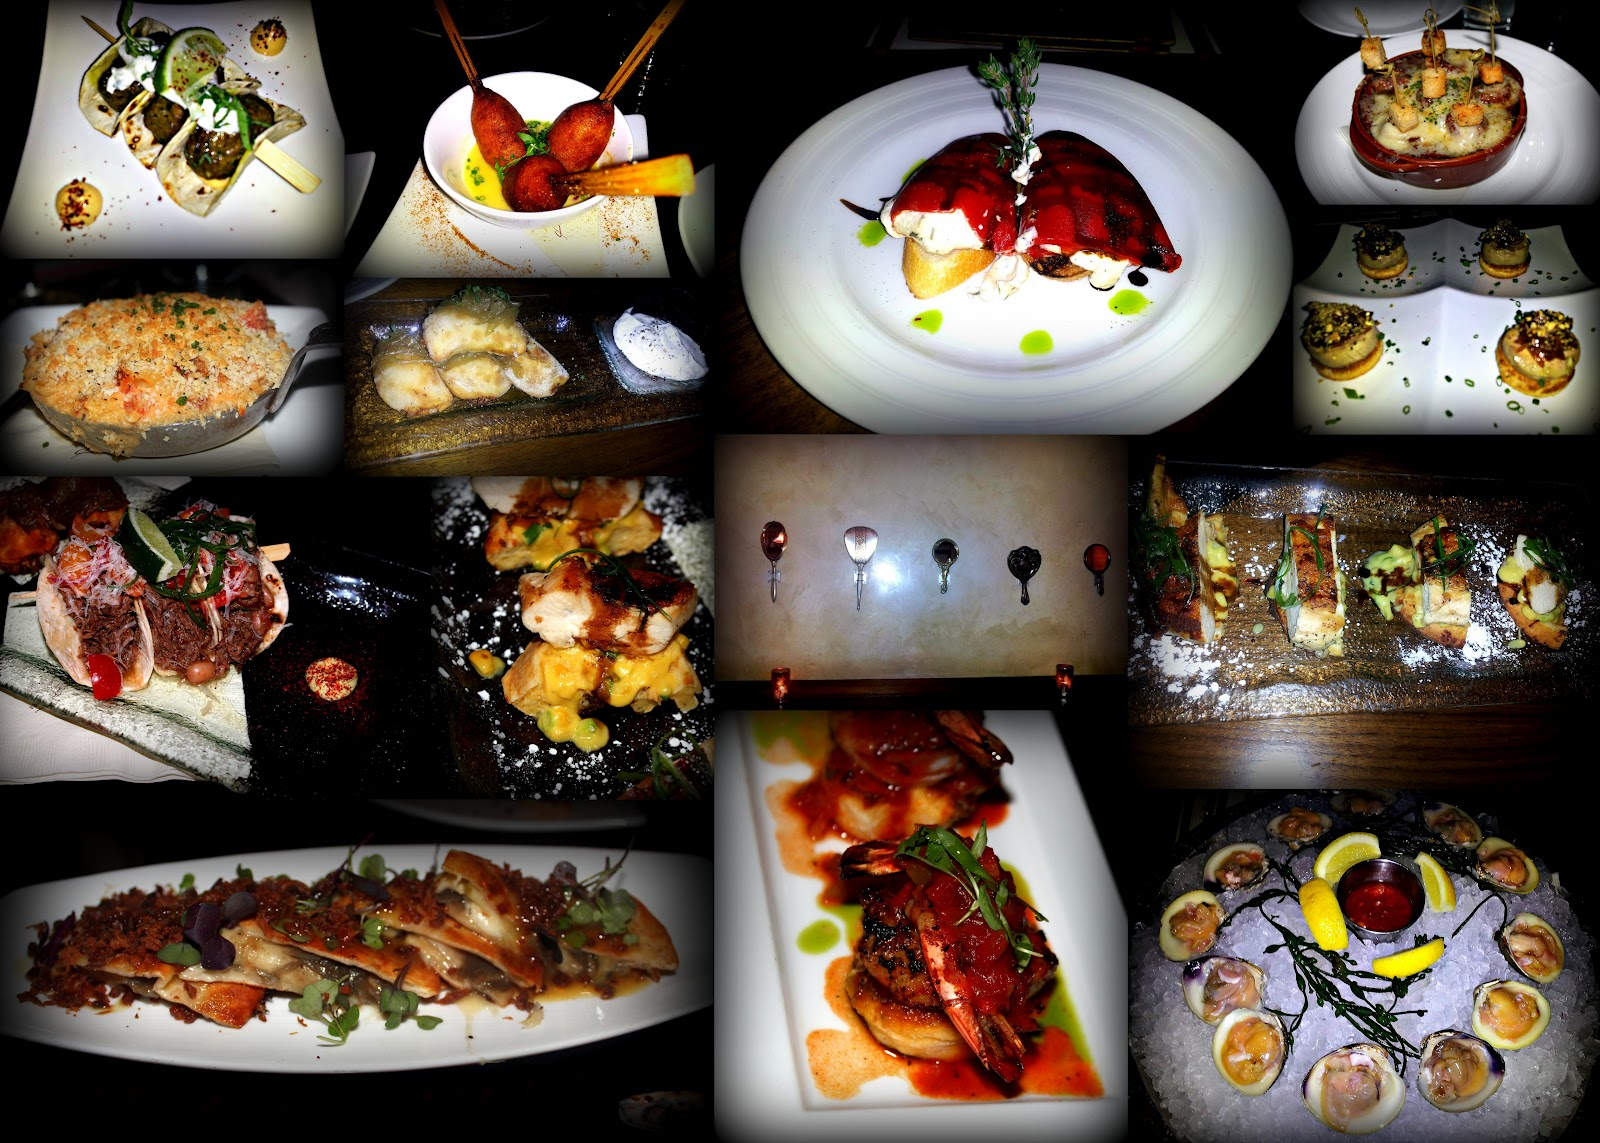 Fifty tastes of yum the stanton social part 2 new york city